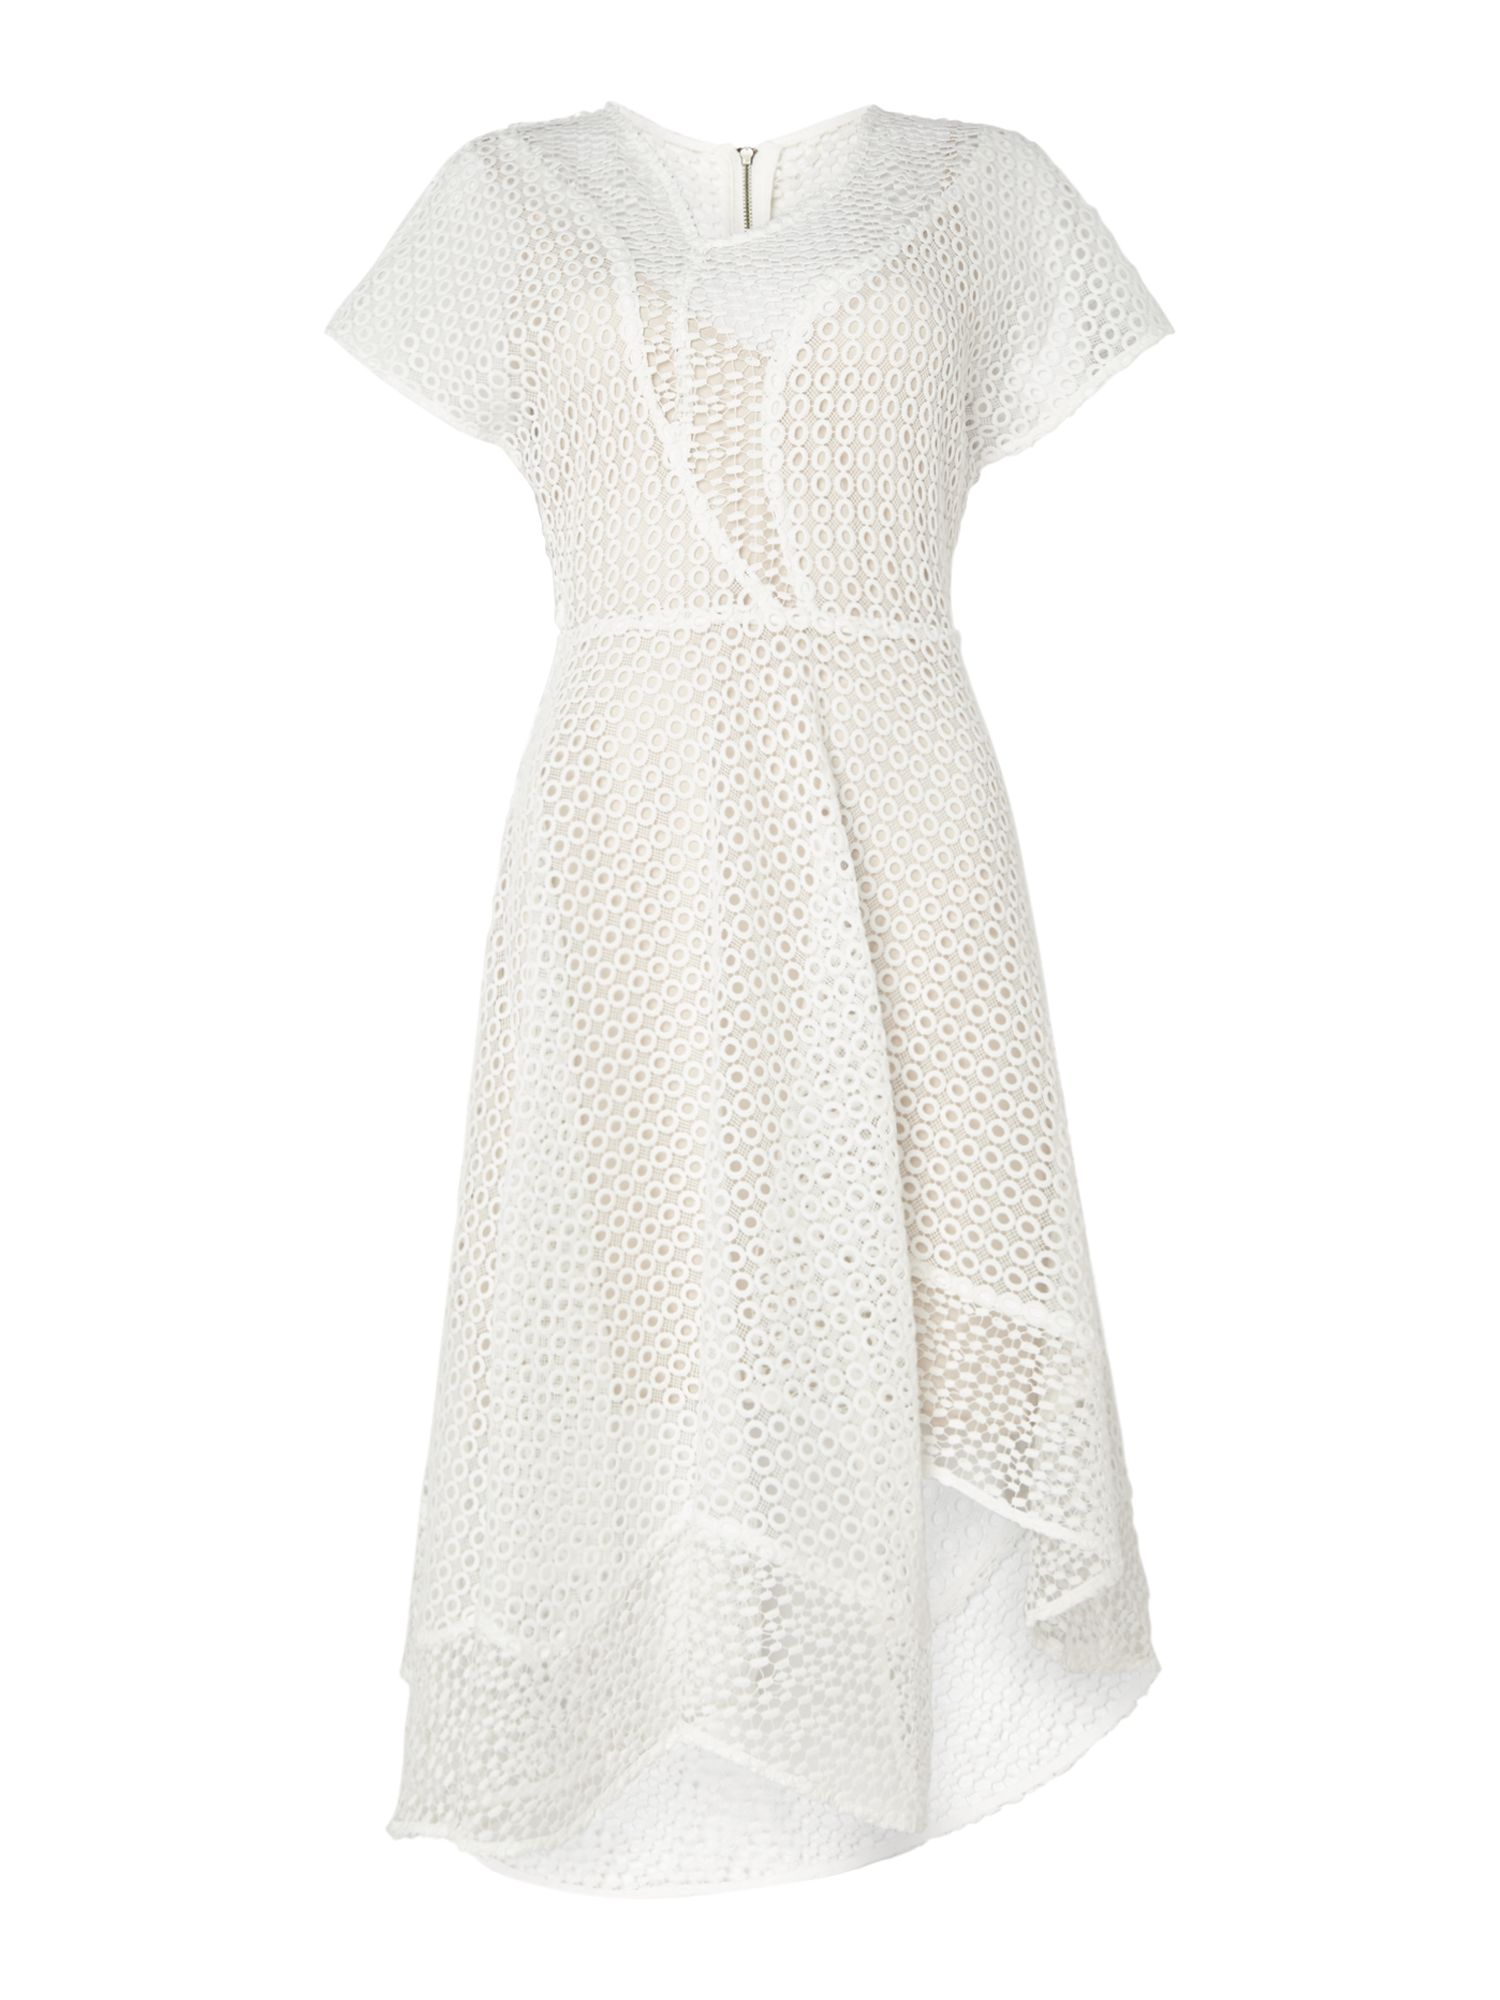 Keepsake Cap sleeved textured dress, White